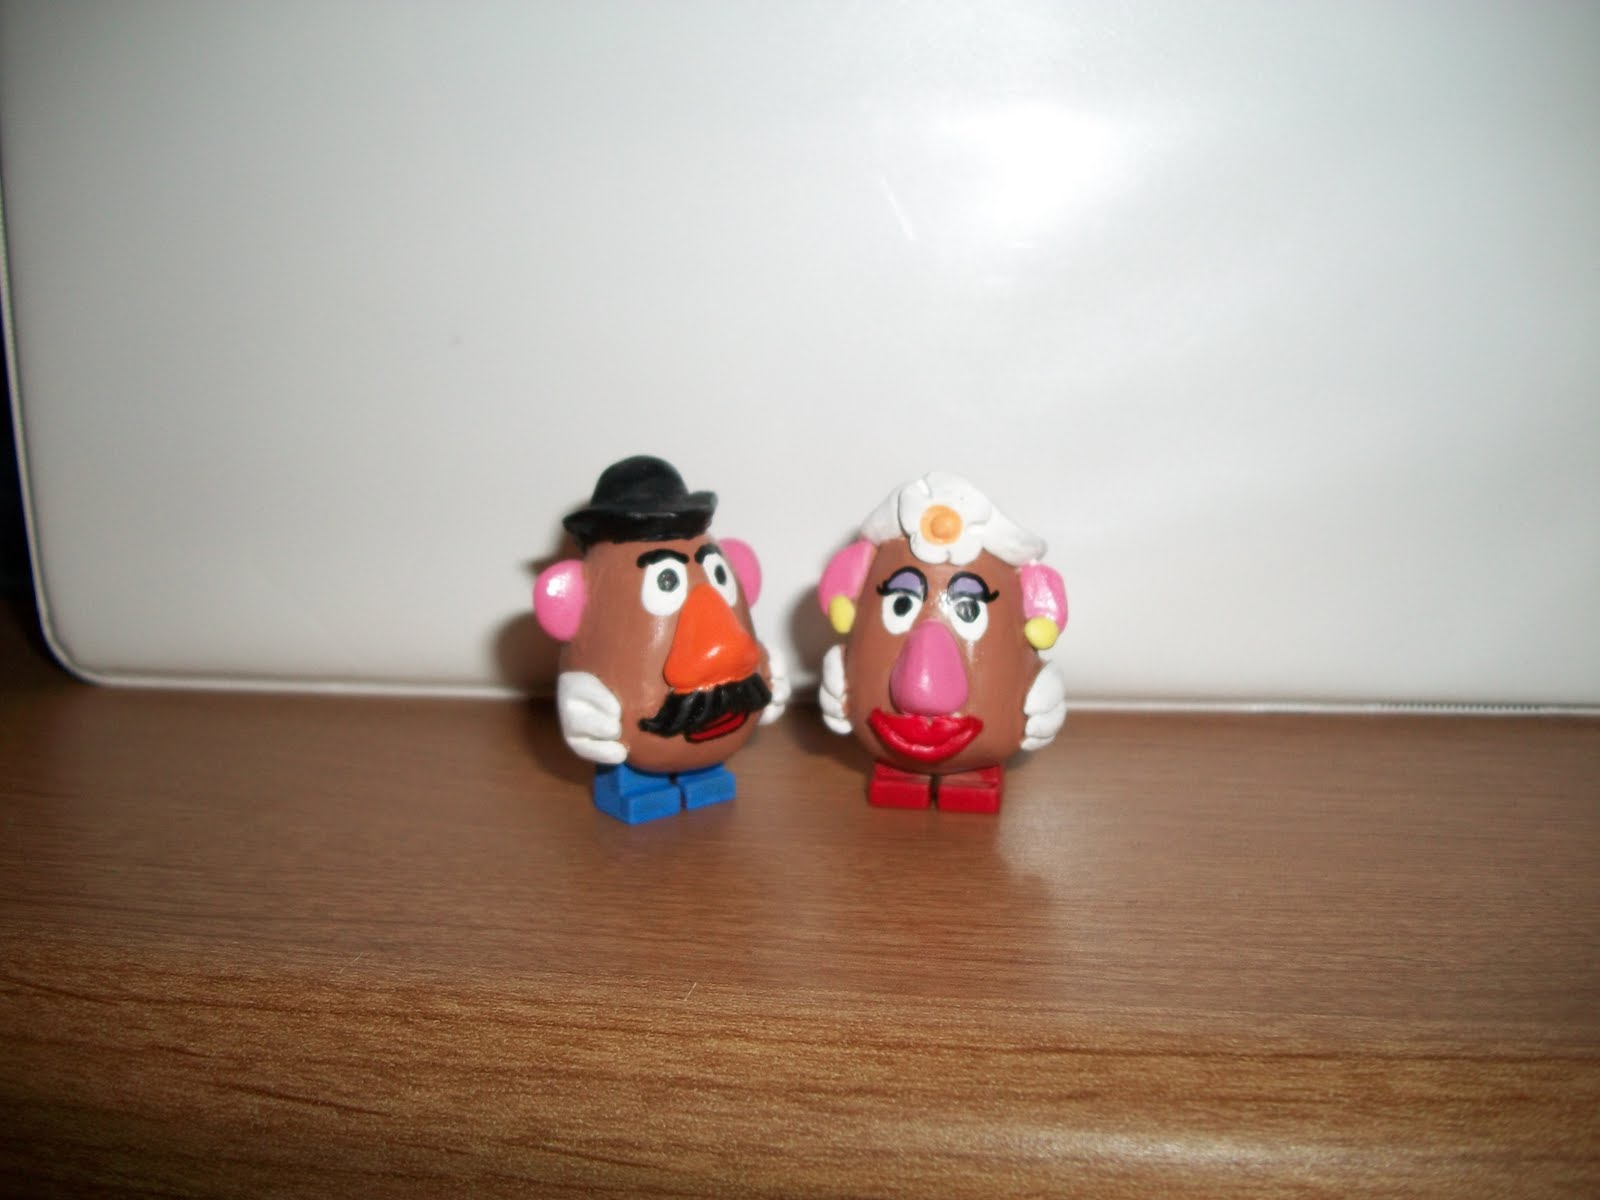 Quinnarama toy story lego mr and mrs potato head - Lego toys story ...